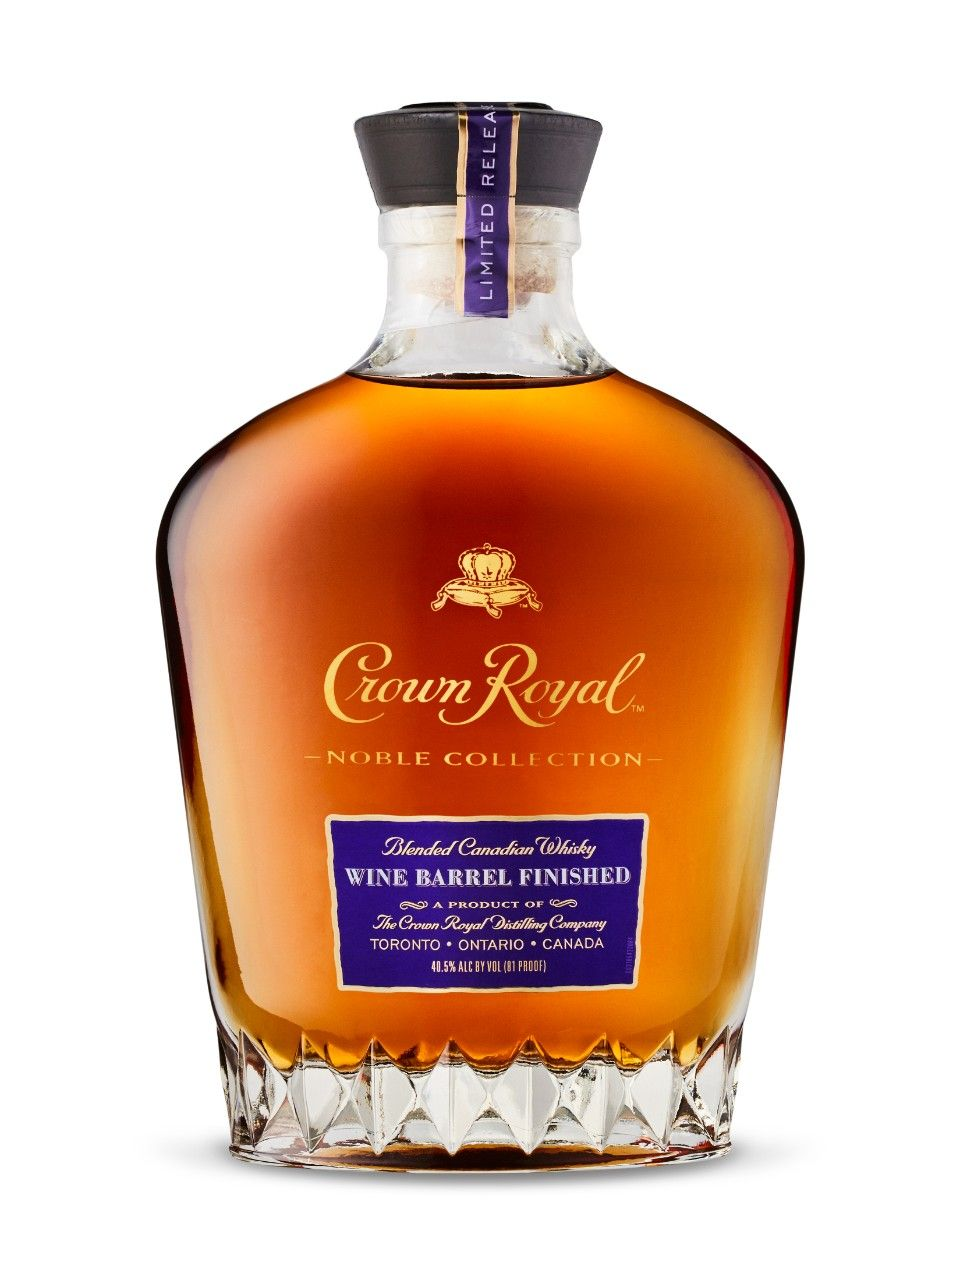 Crown Royal Wine Barrel Finished Noble Collection Whisky Wine Food Pairing Wine Collection